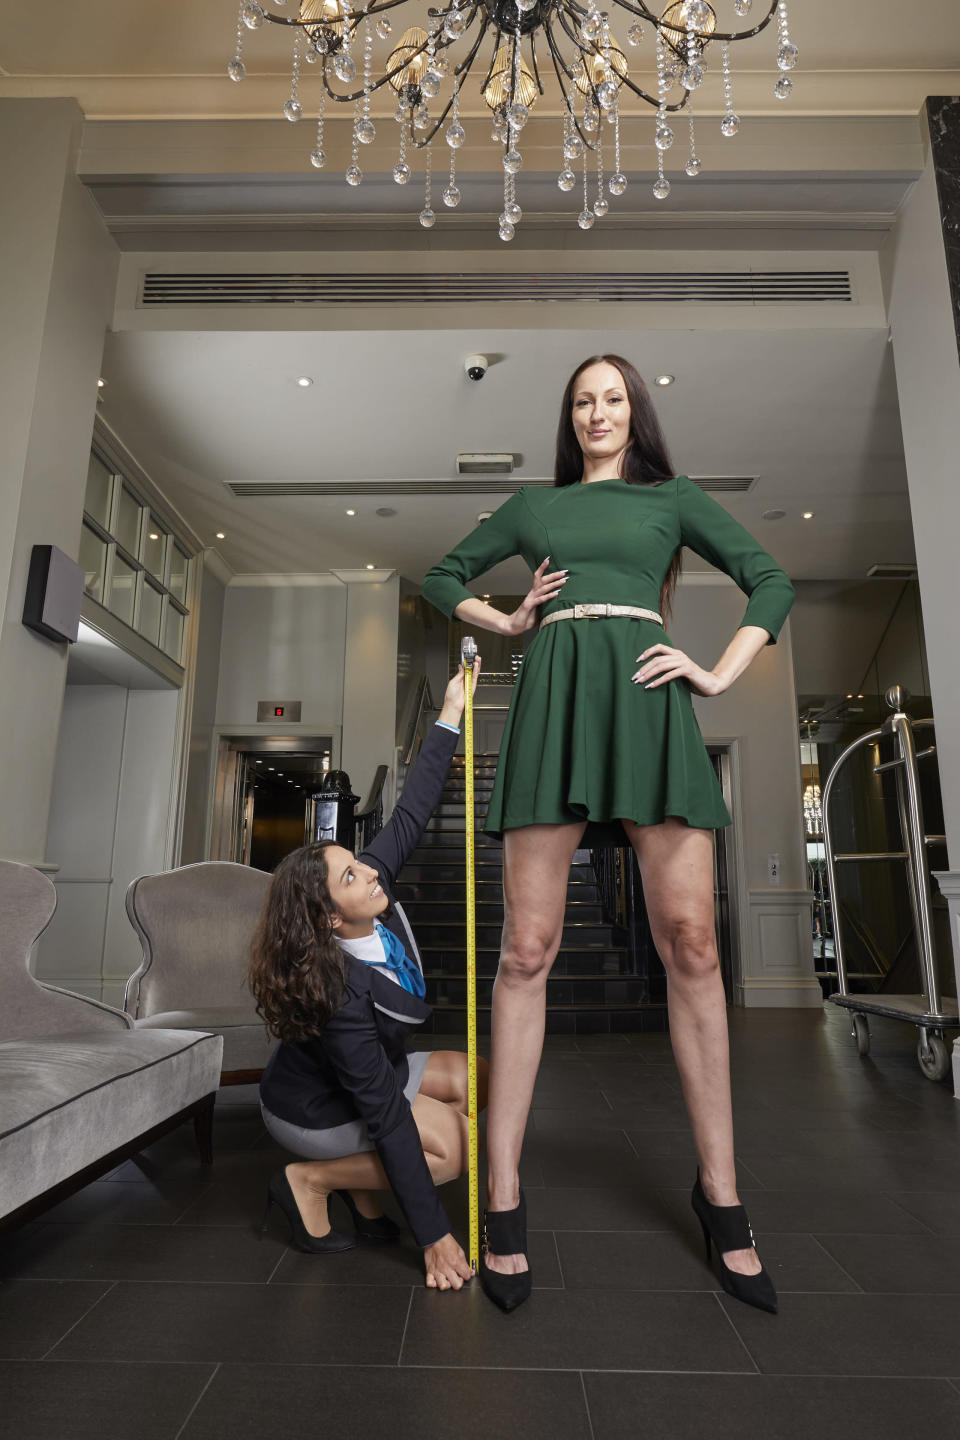 <p>At 6'9, Ekaterina Lisina has the record for the Longest Legs and being the Tallest Model. (PA) </p>